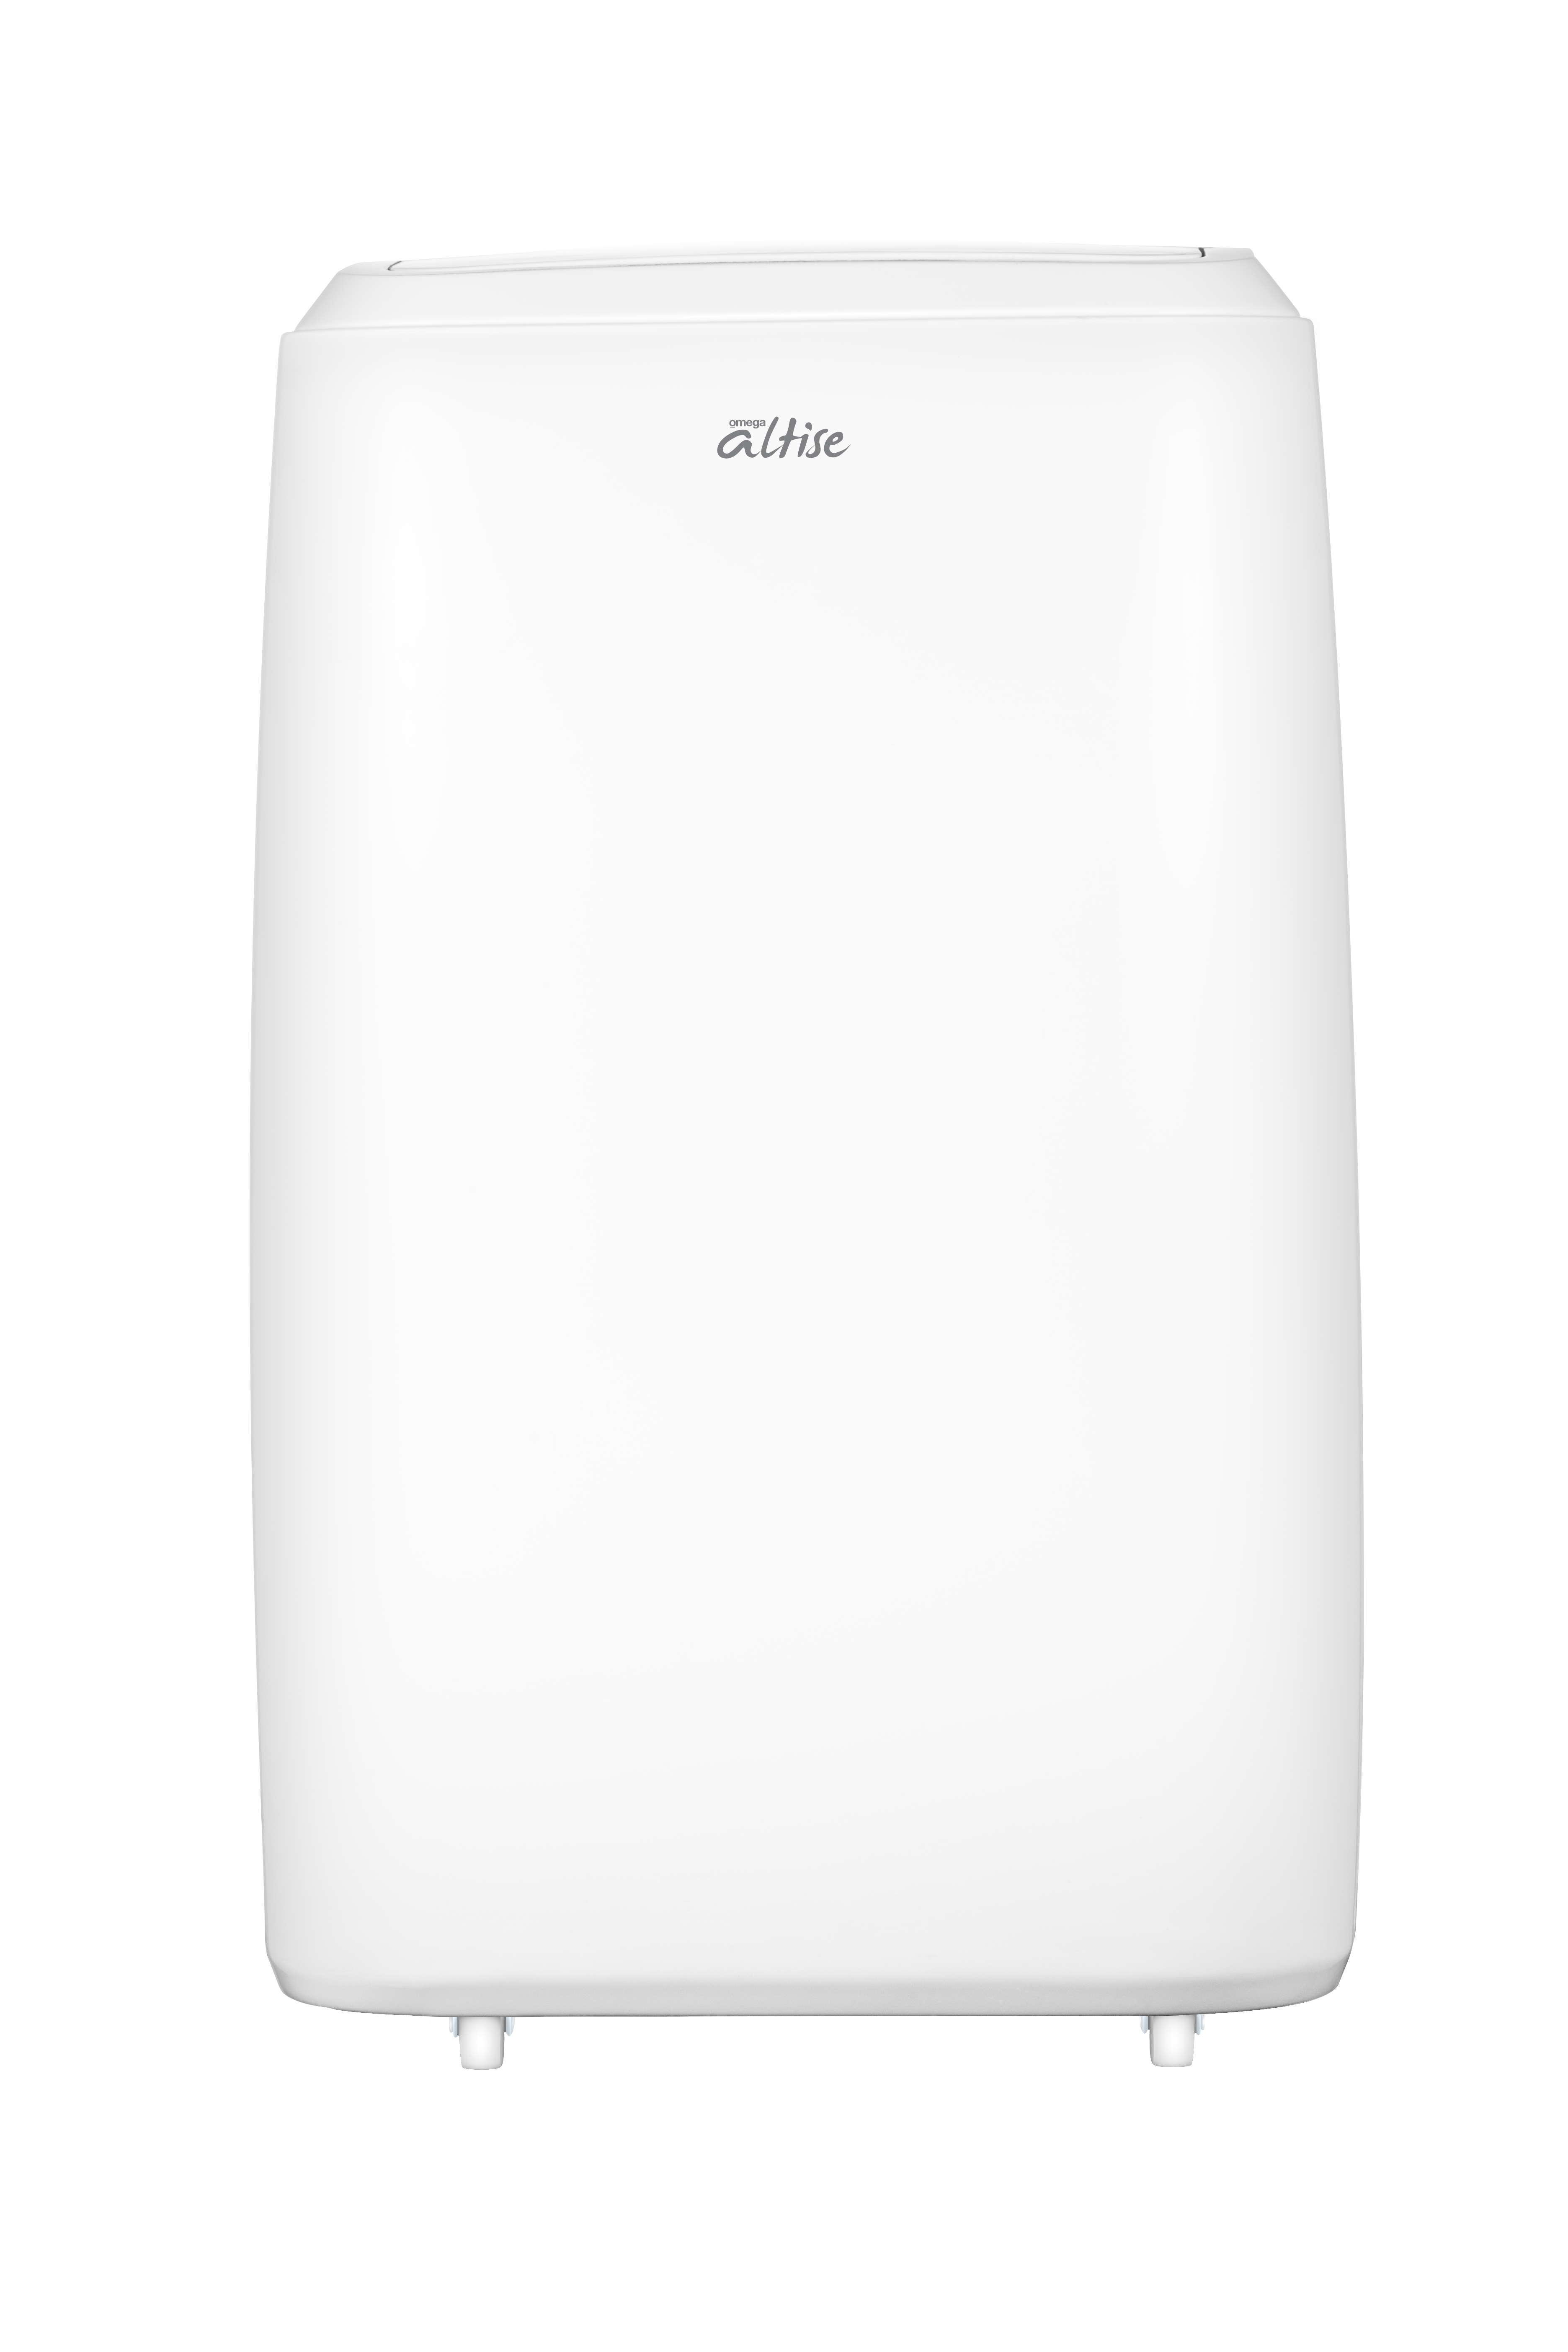 Omega Altise product 4kW Slimline Portable Air-Conditioner OAPC147